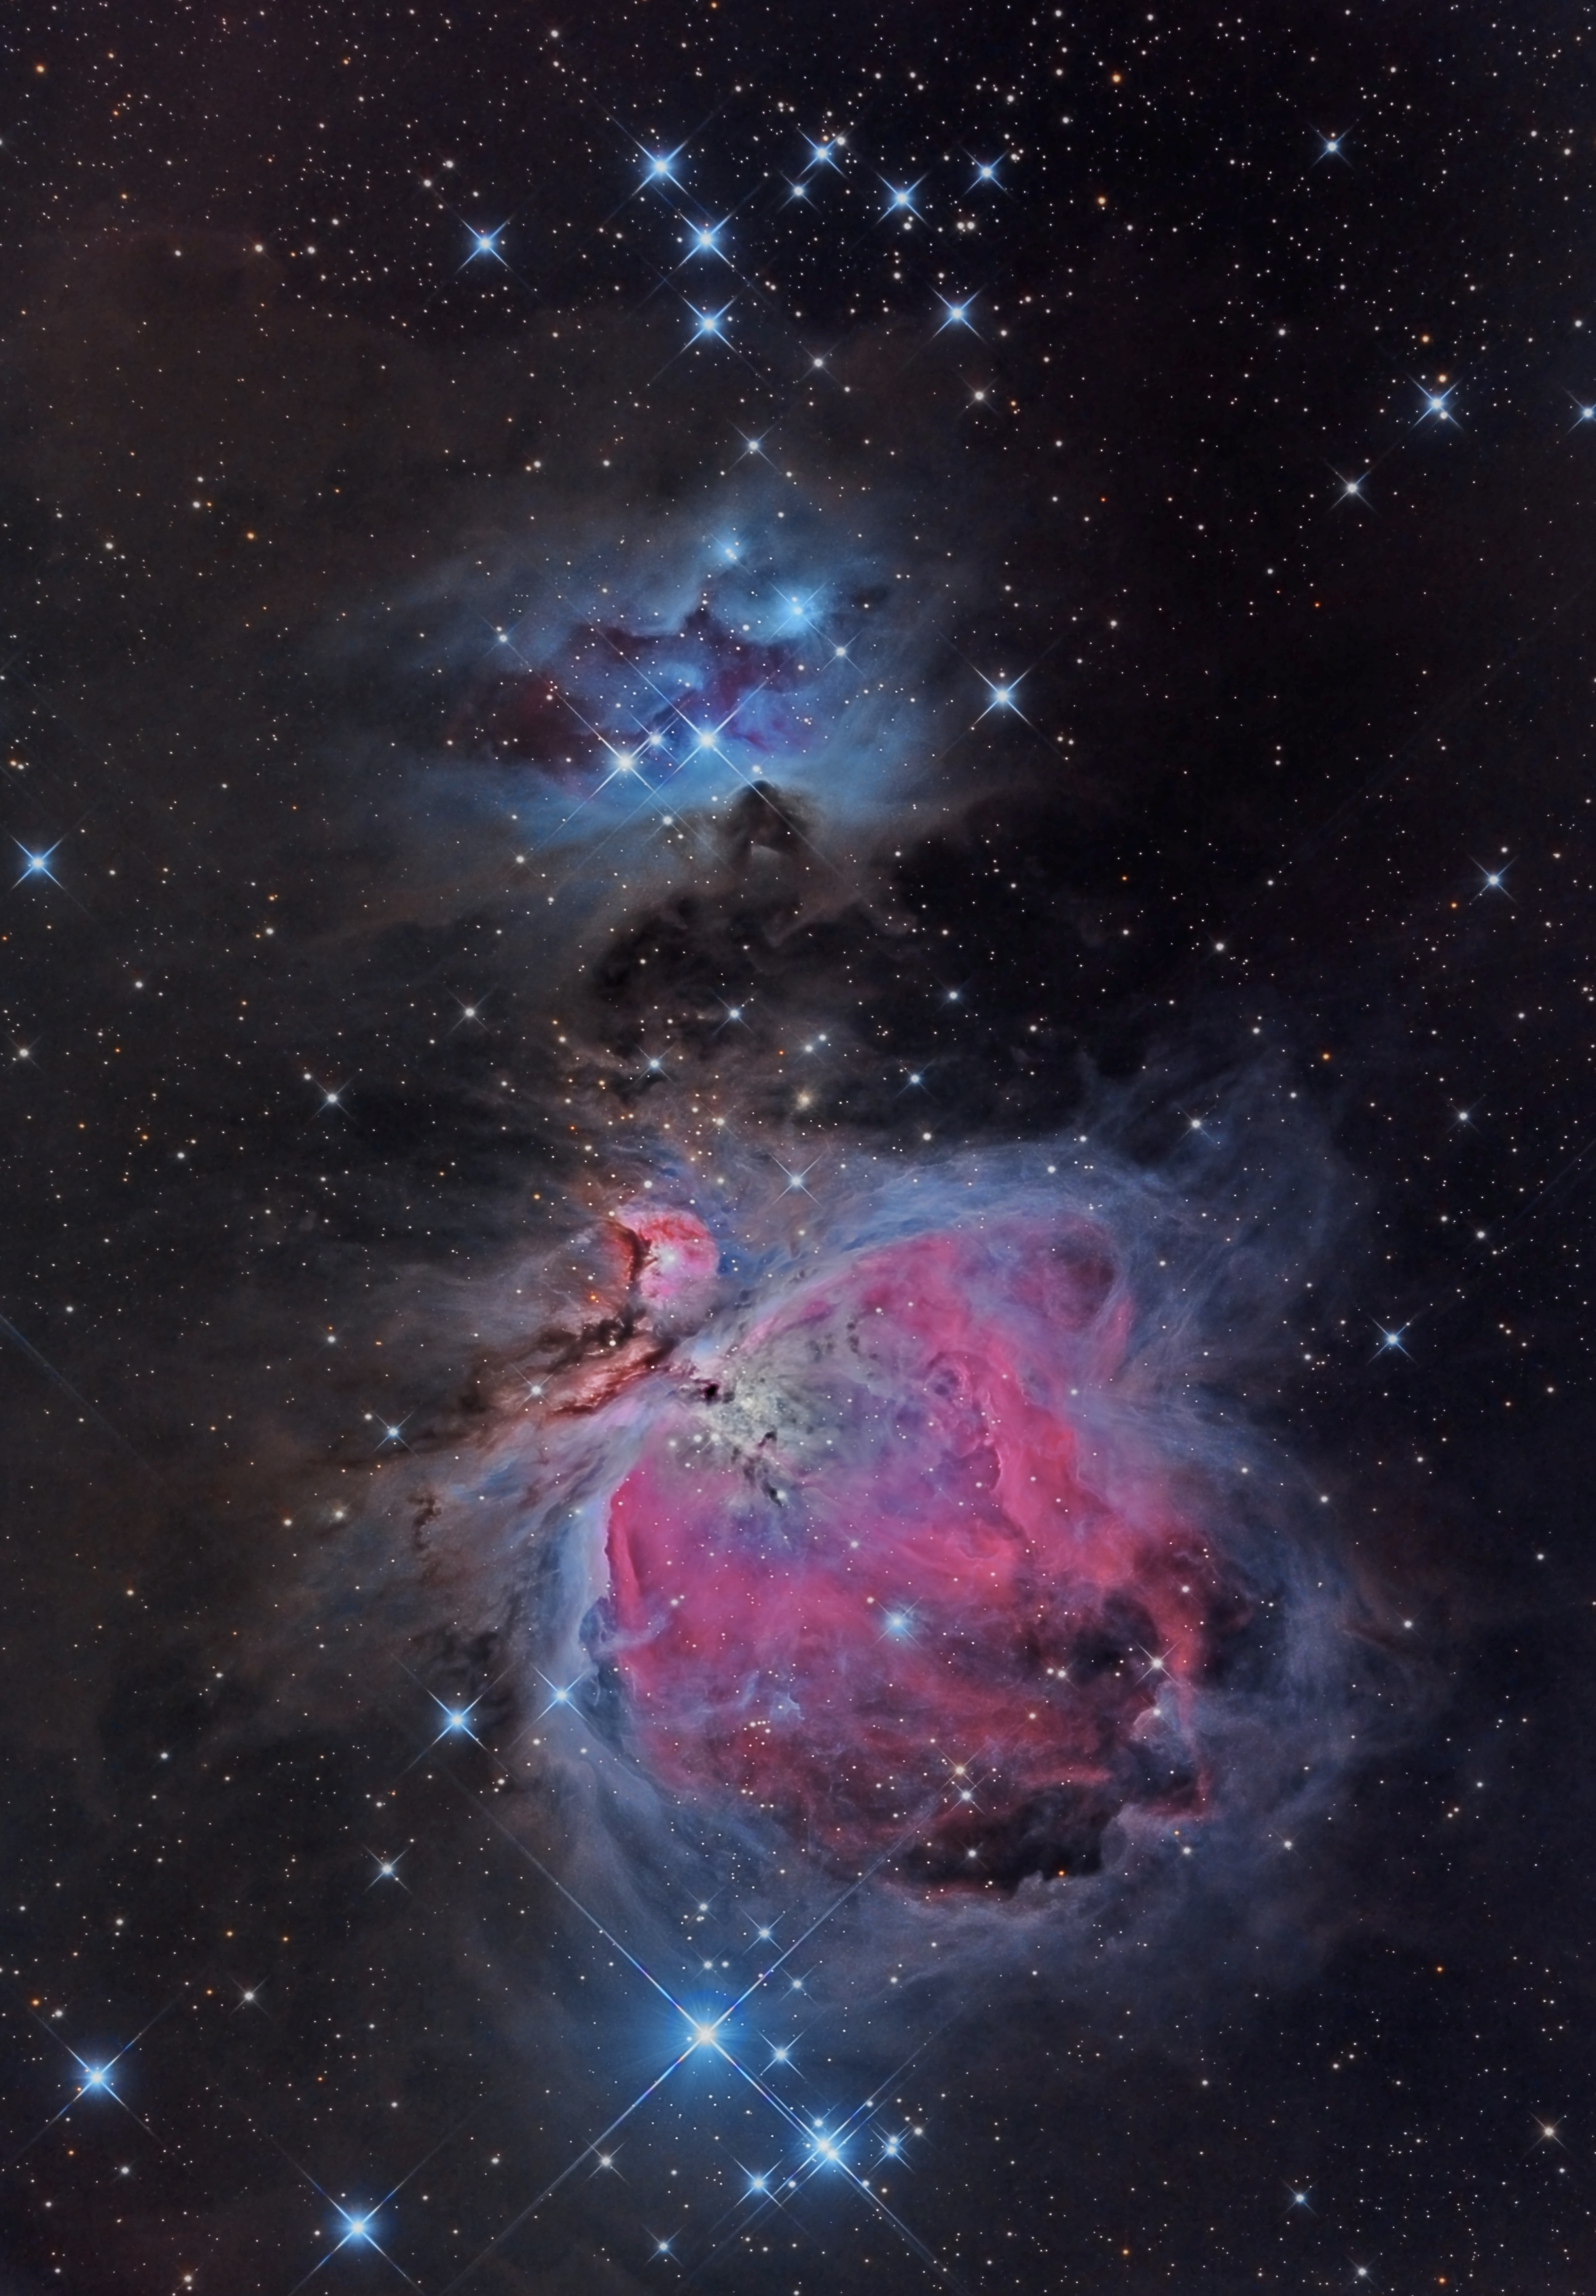 Exploring Orion's Wonders Using Mobile Astronomy Apps